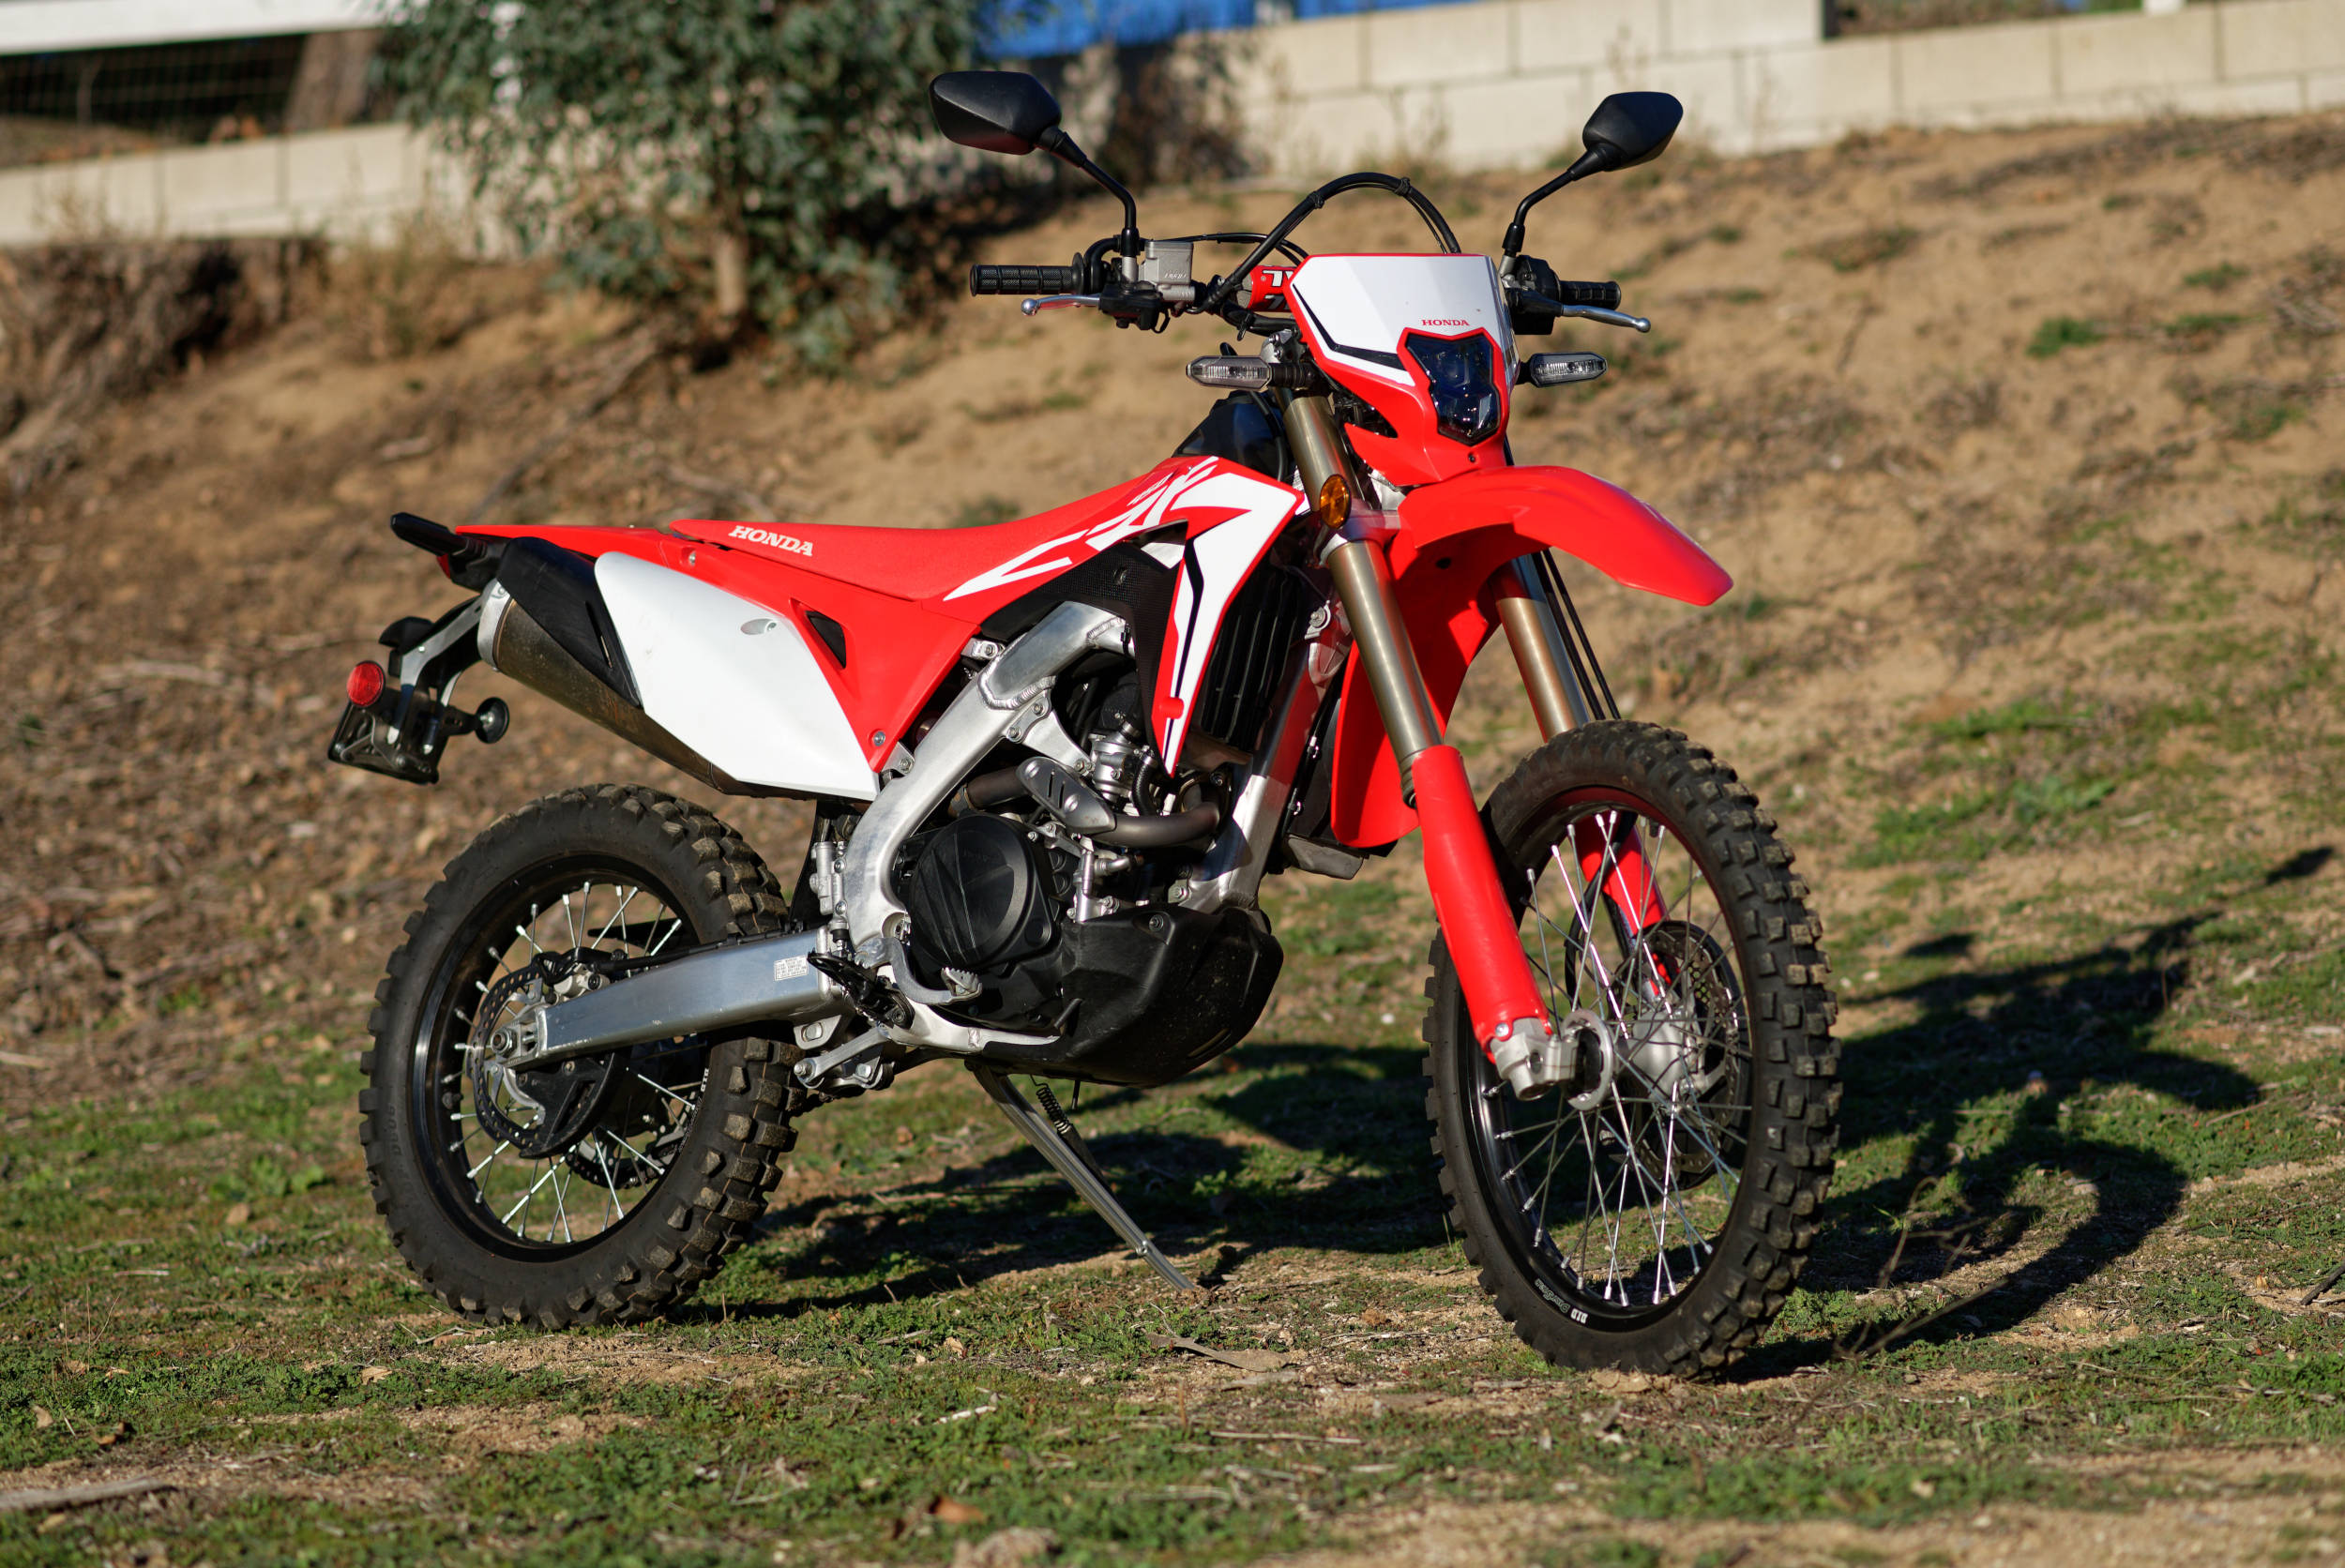 2019 Honda CRF450L: MD Ride Review, Part 1 - MotorcycleDaily com